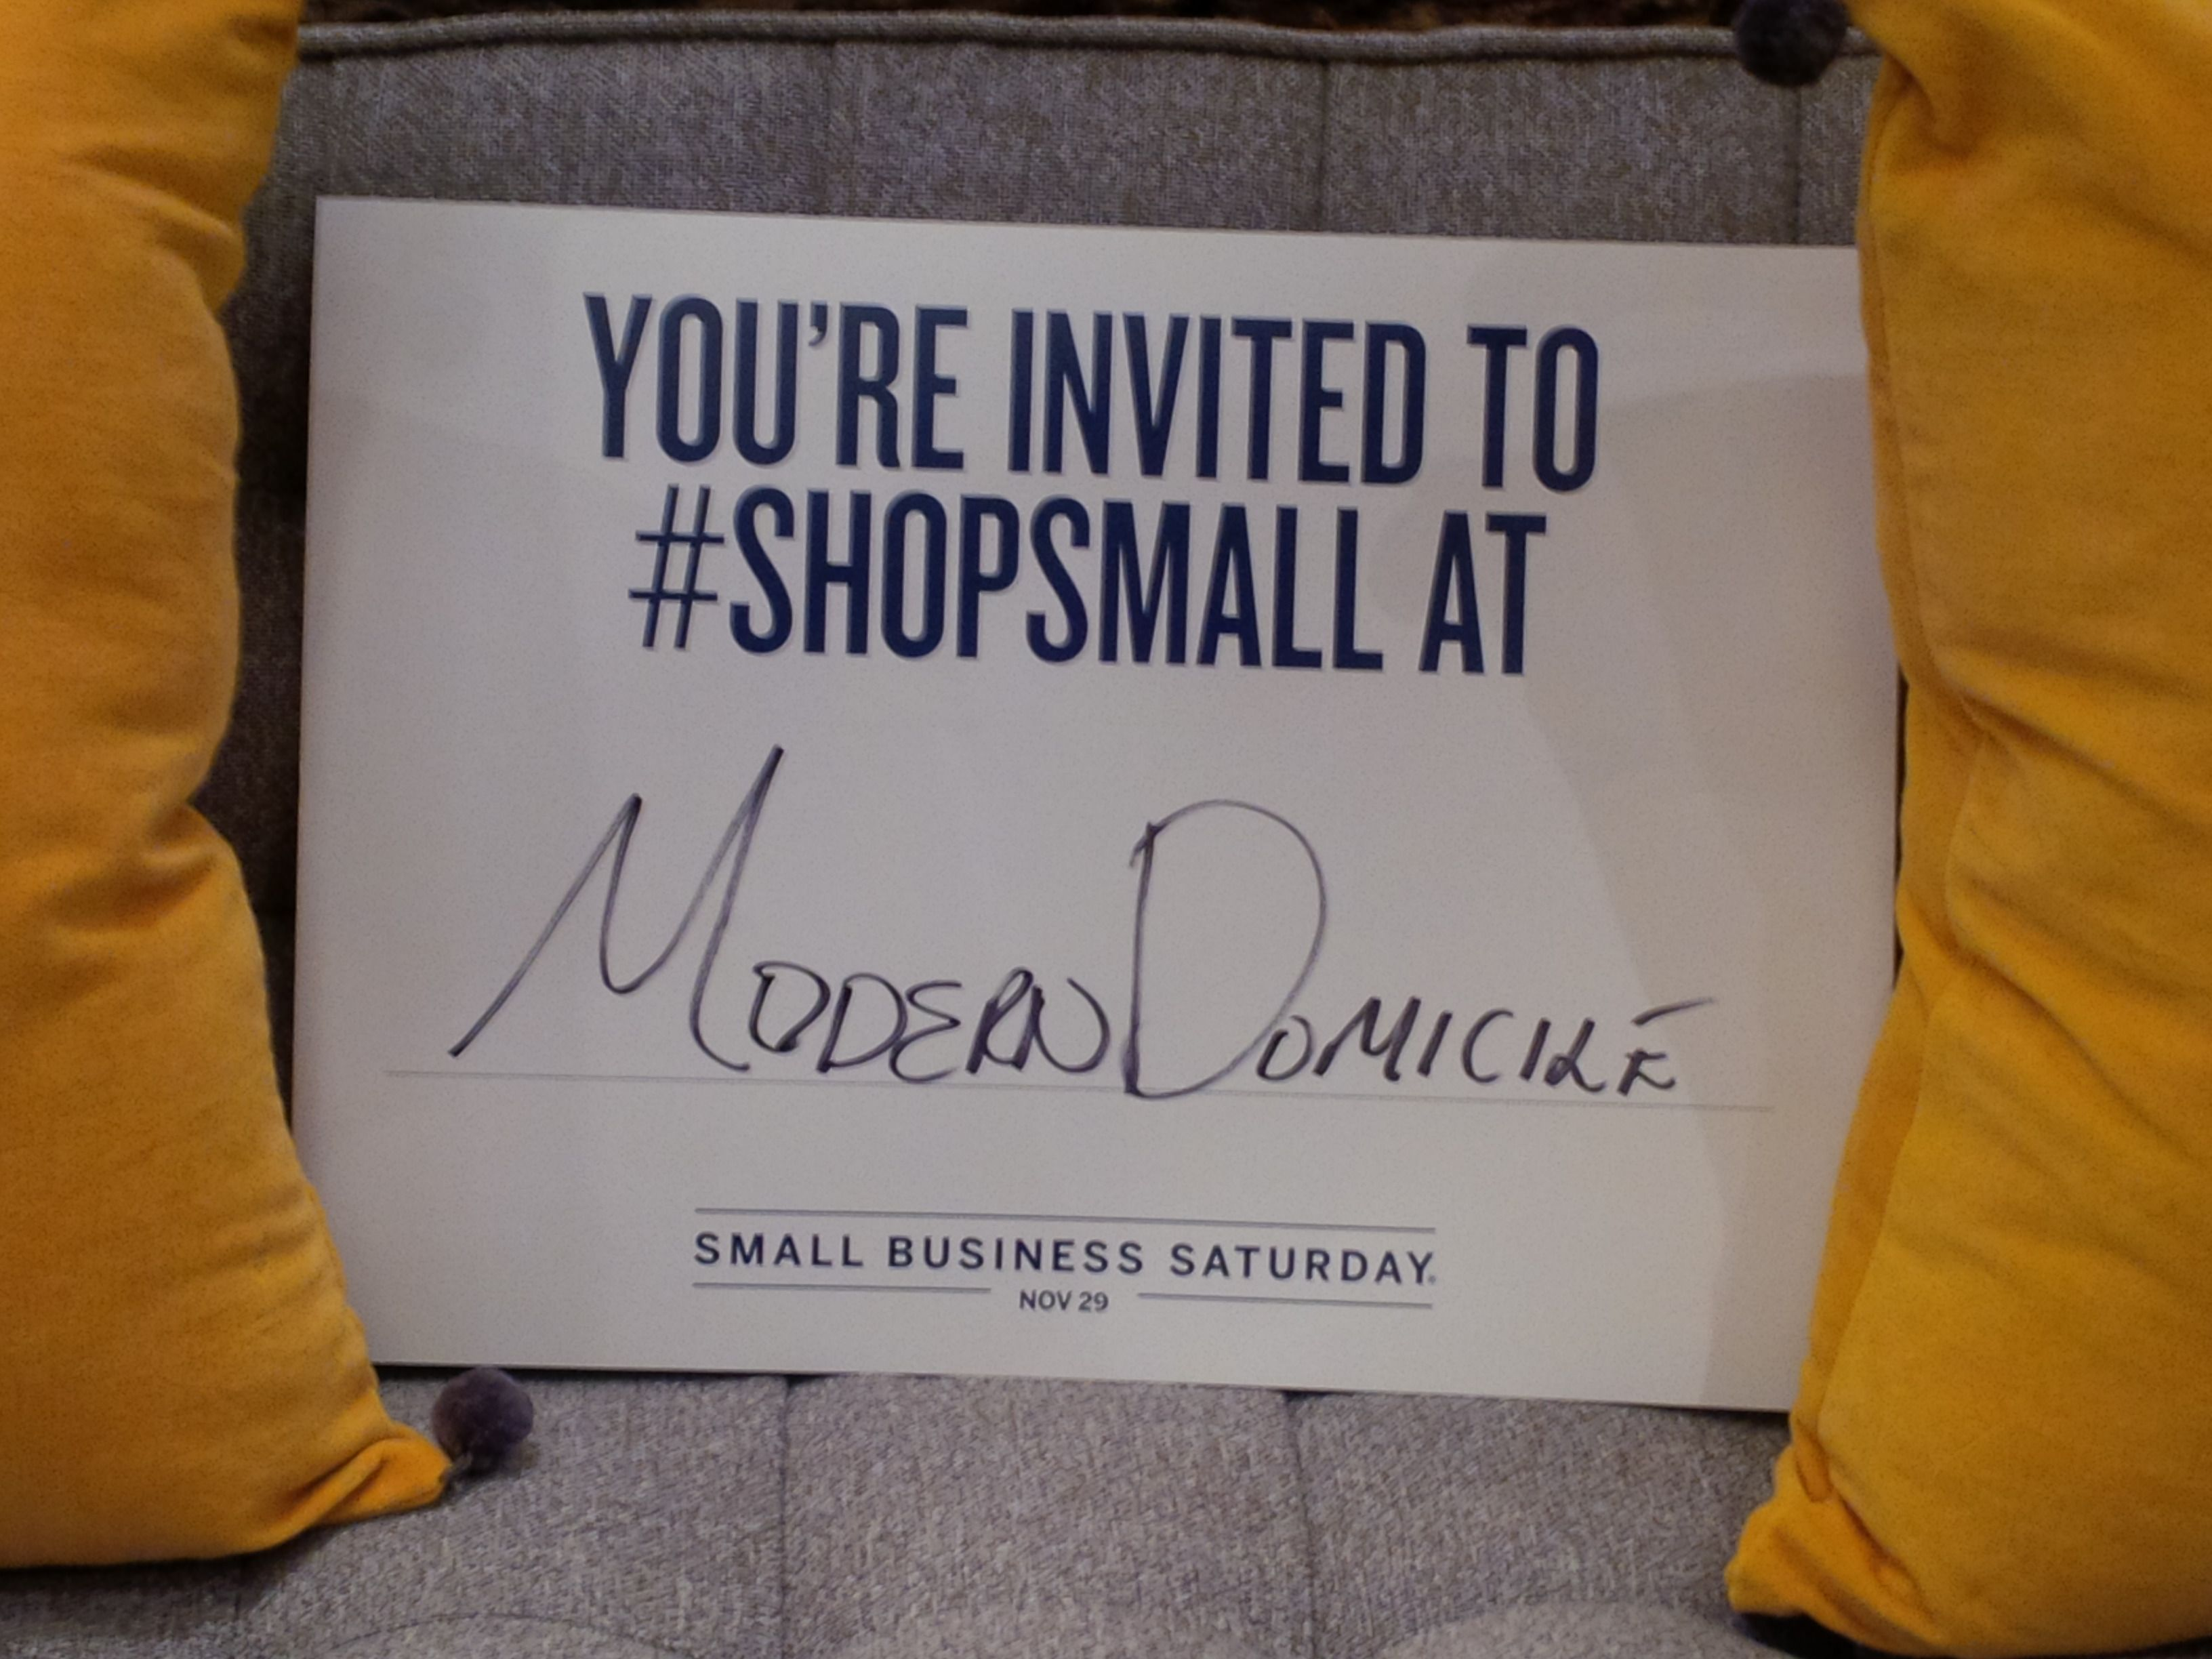 ModernDomicile is participating in Small Business Saturday once again, join us on November 29th for special offers, incentives, and a local business celebration!